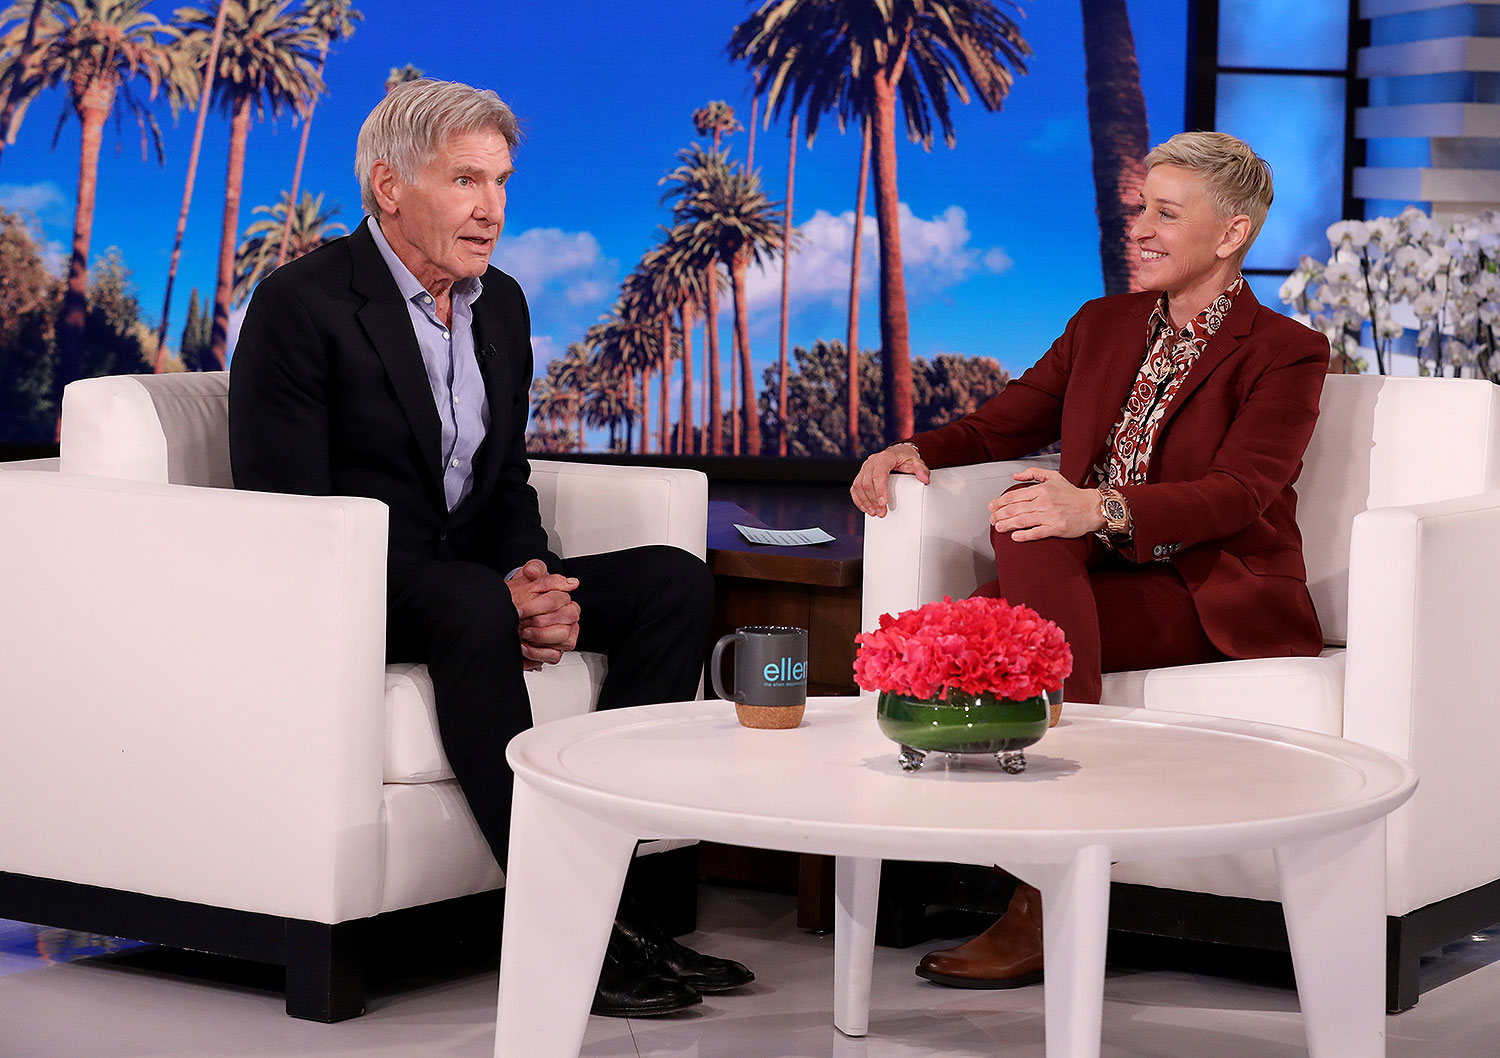 Harrison Ford and Ellen DeGeneres